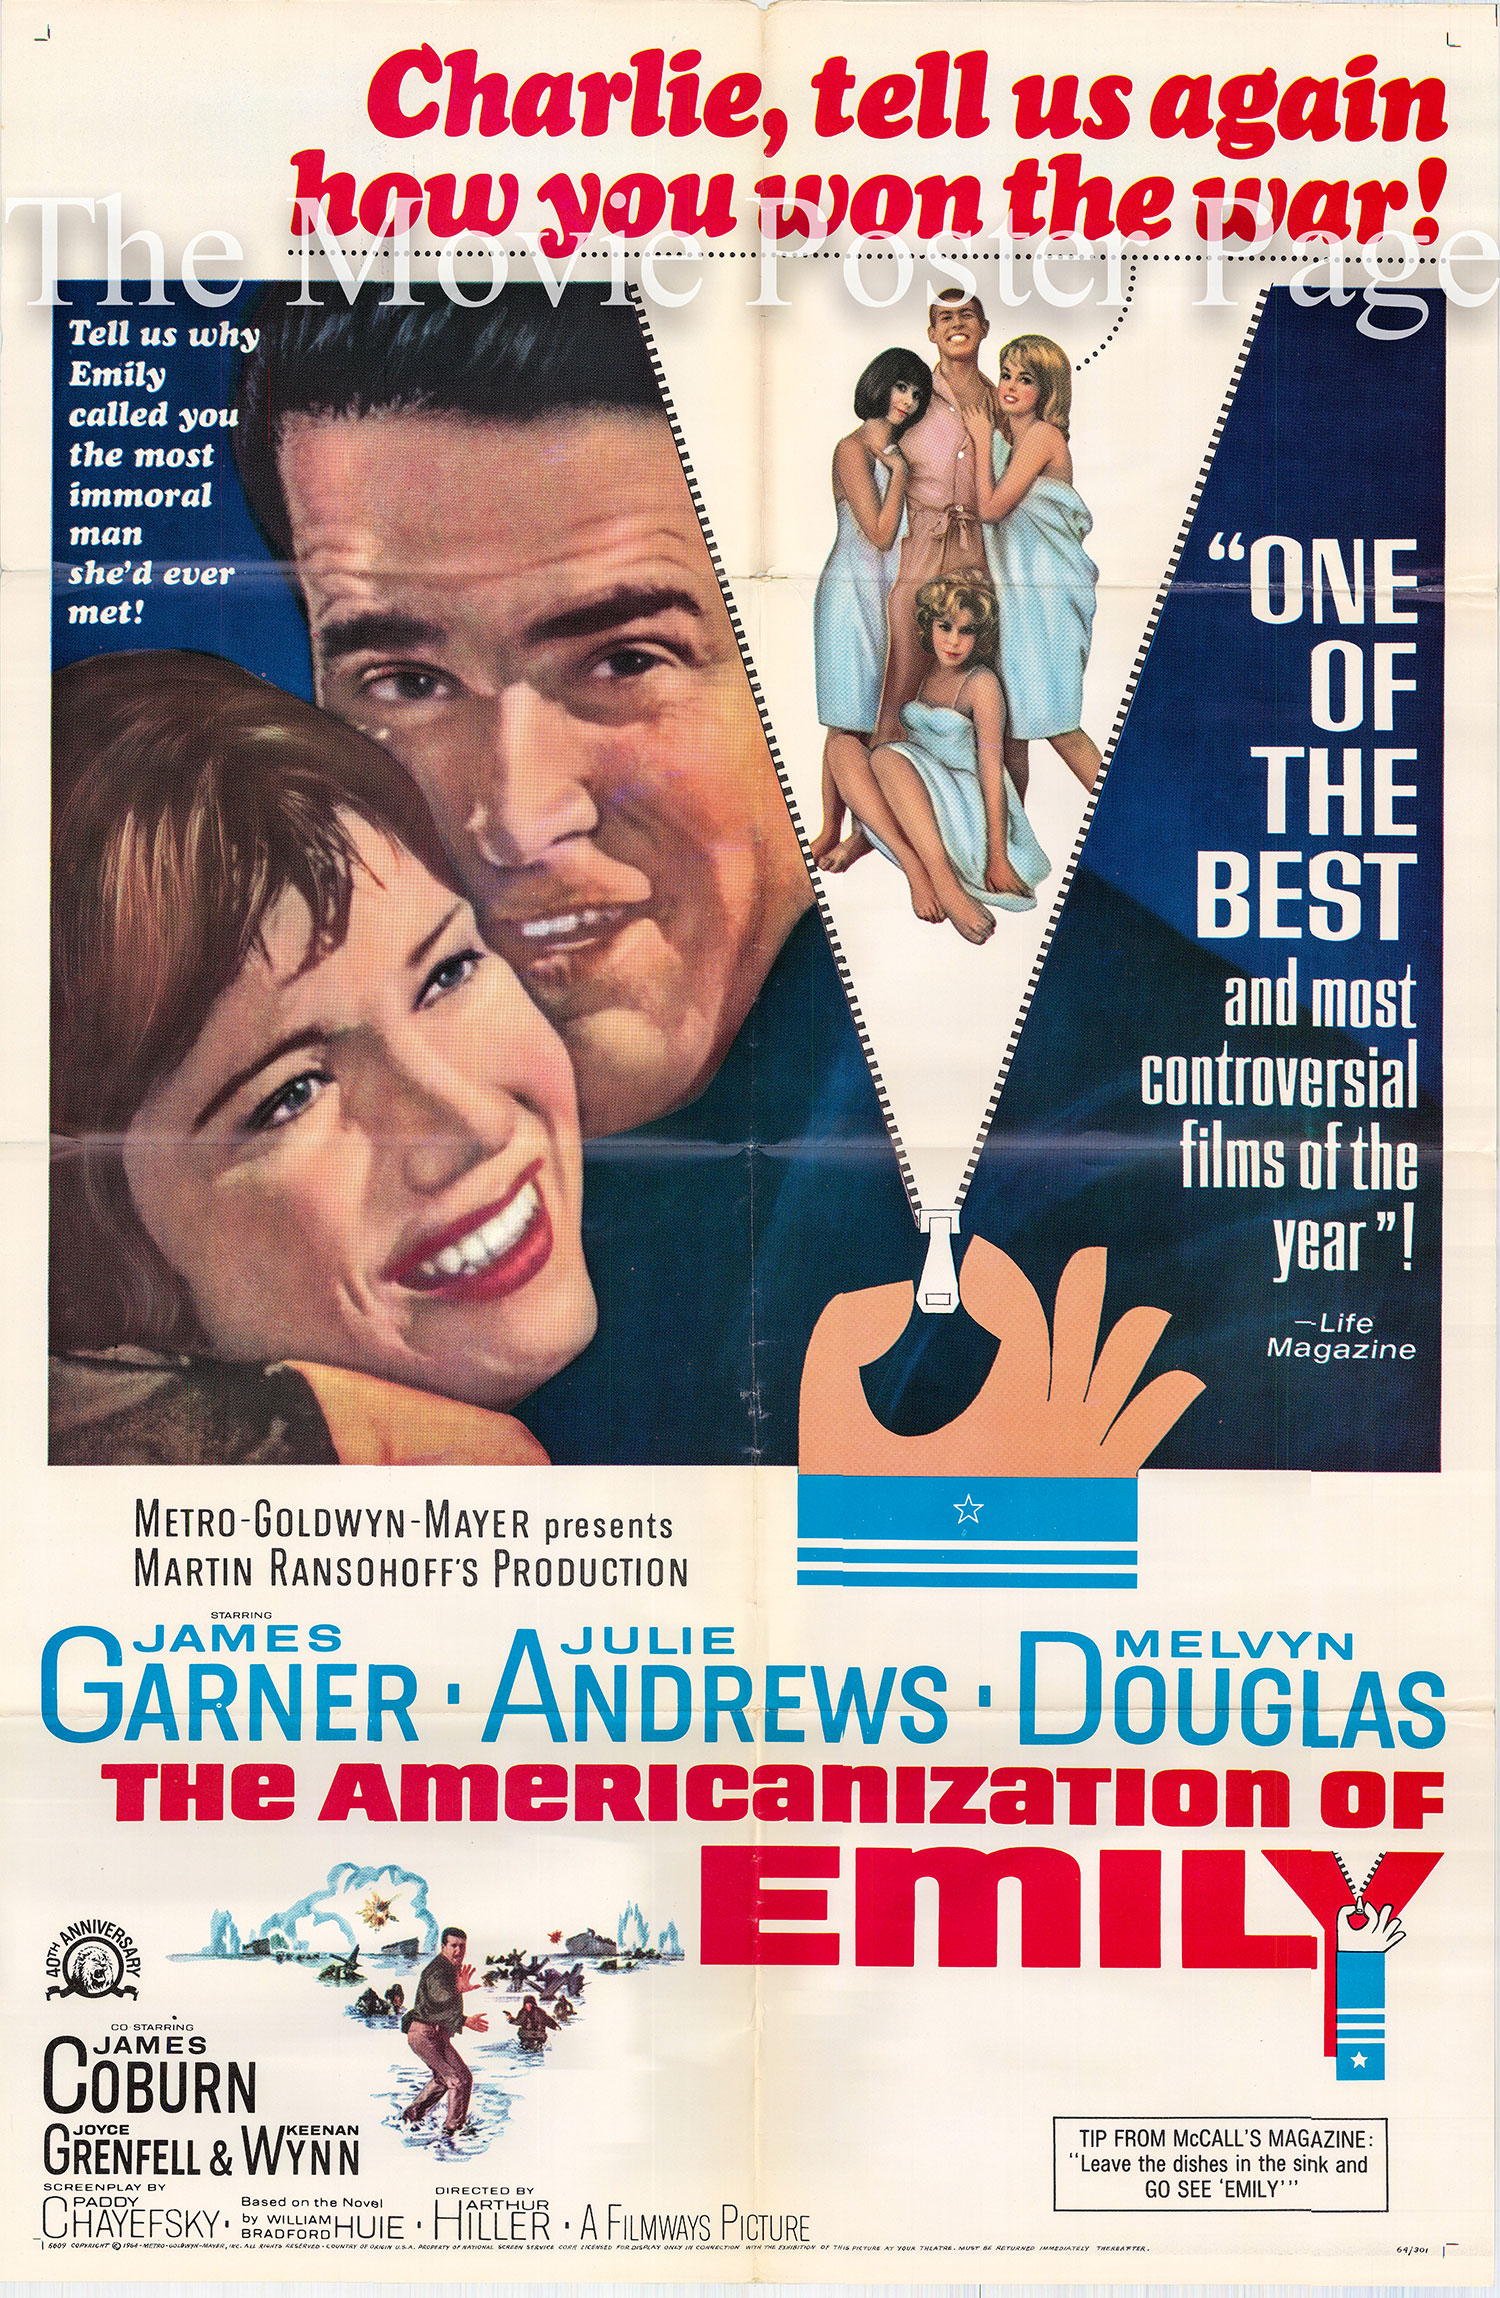 Pictured is a US promotional poster for the 164 Arthur Hiller film The Americanization of Emily starring James Garner and Julie Andrews.